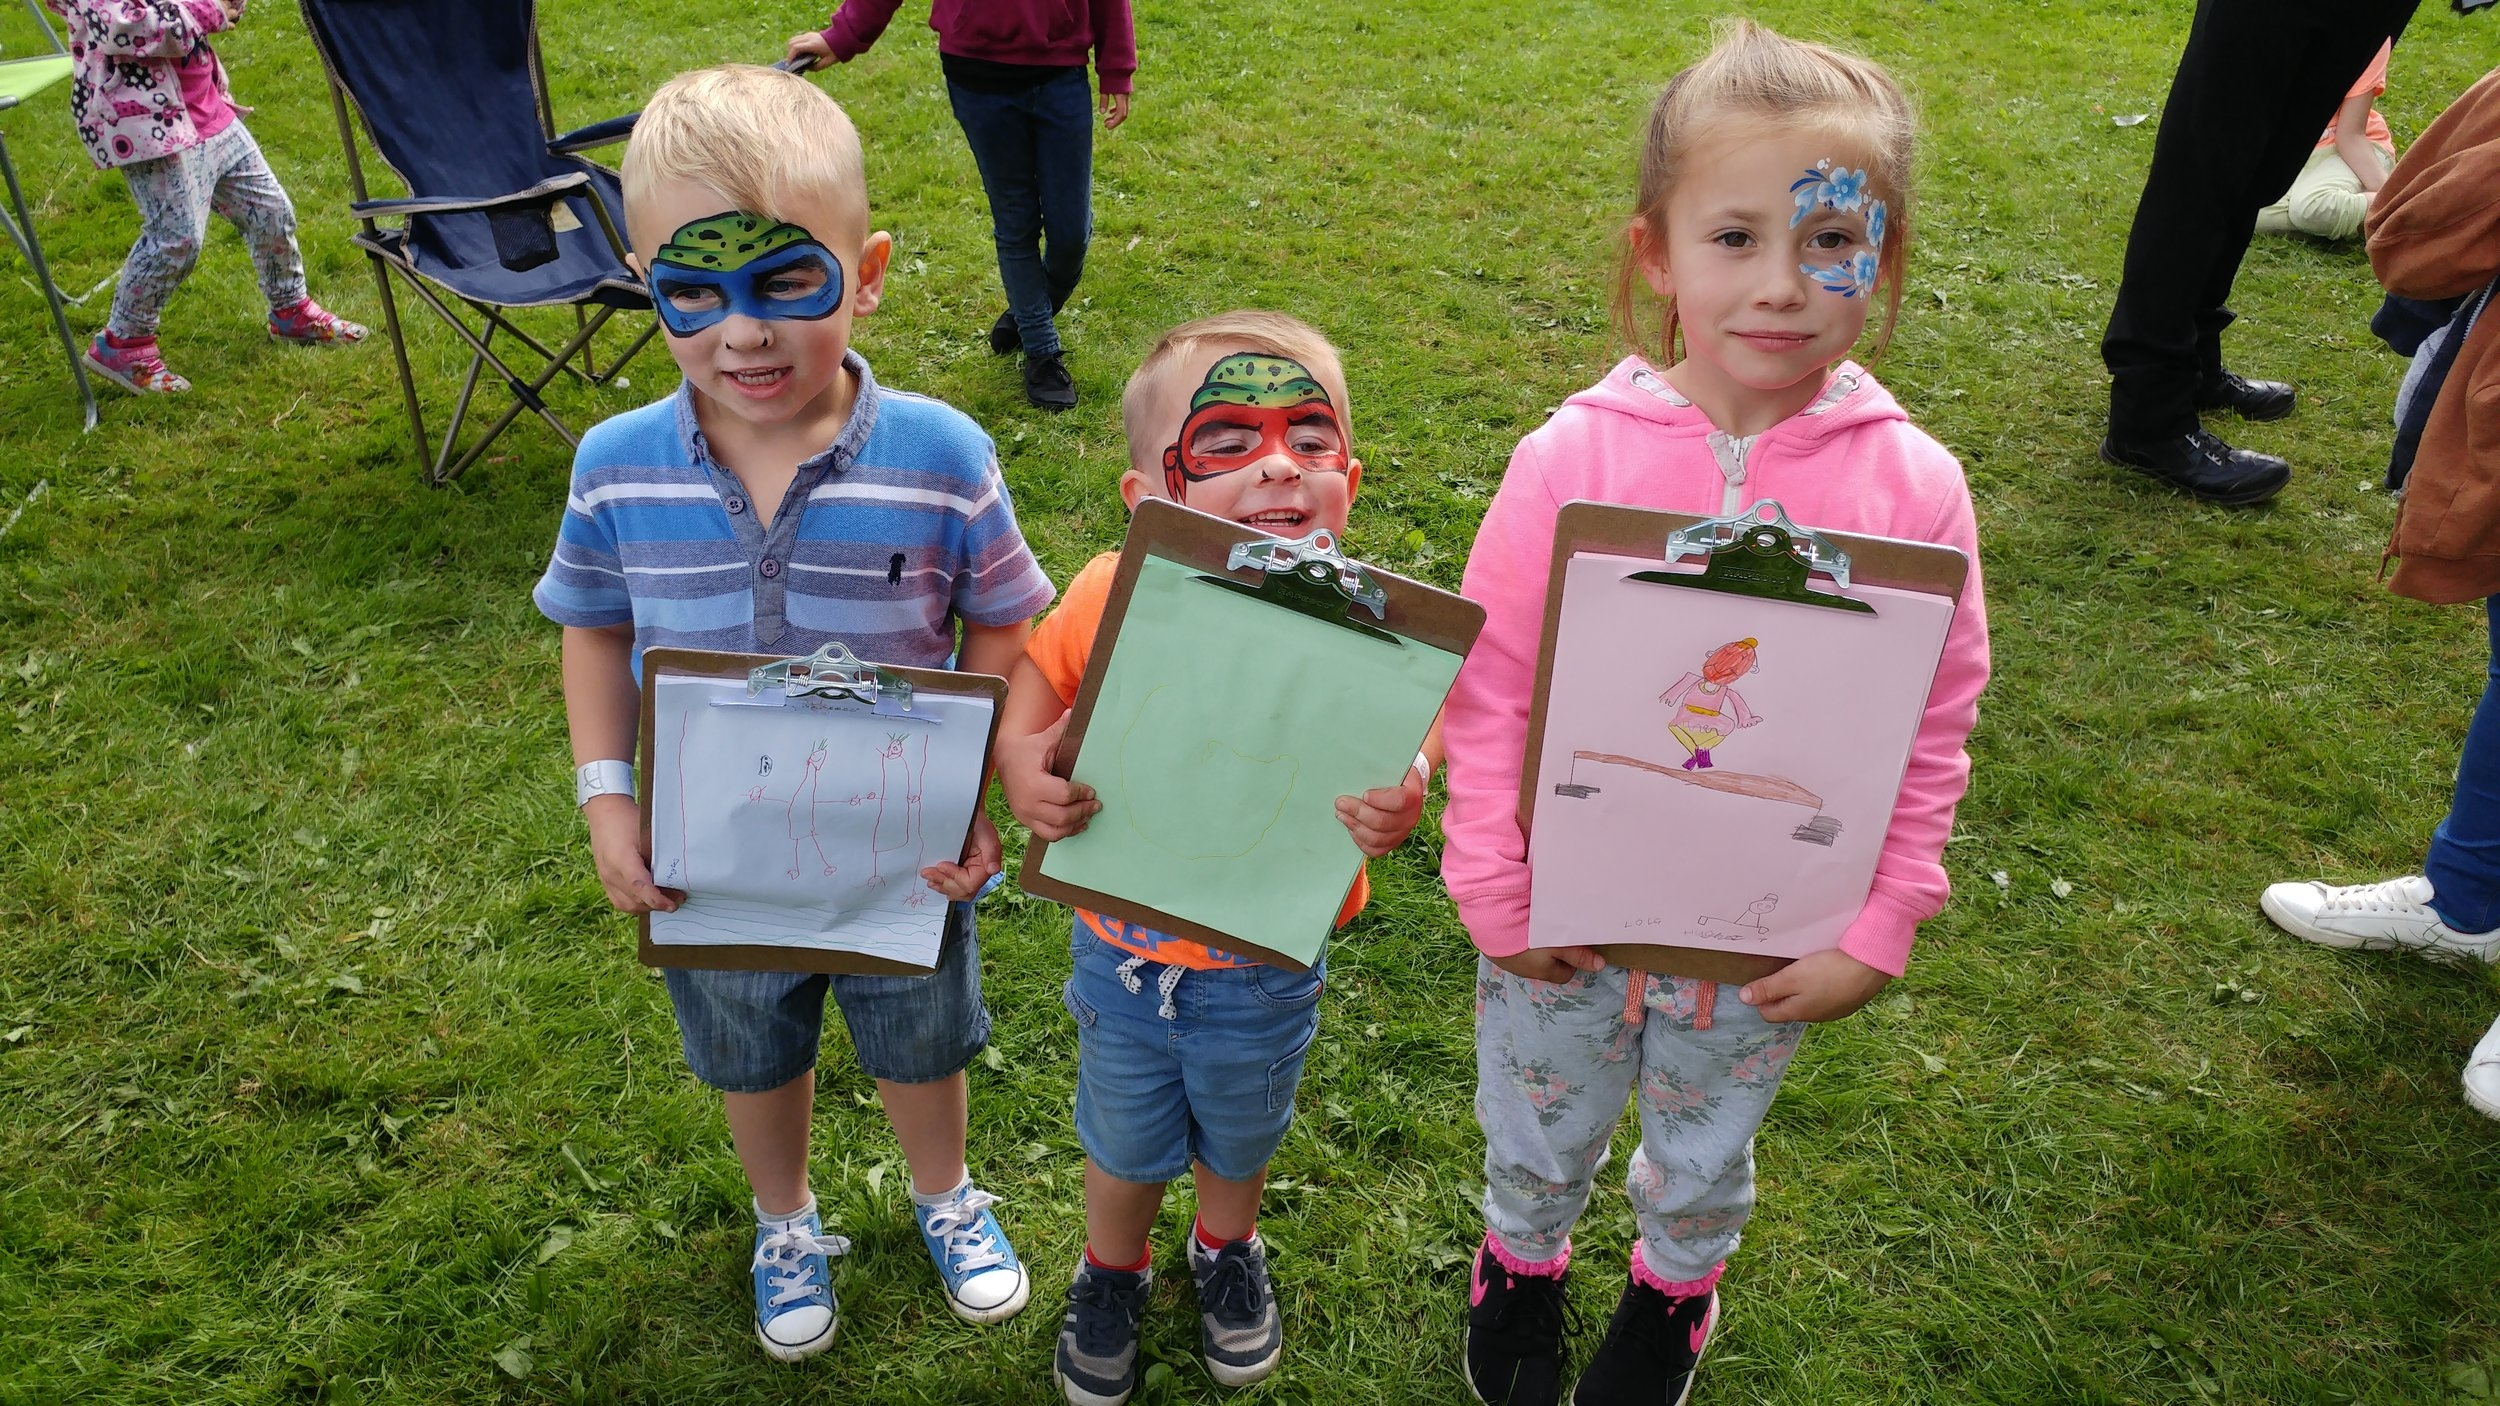 A hat-trick of artwork - from Kane, Archie and Lola Hughes at the Middleport Park event